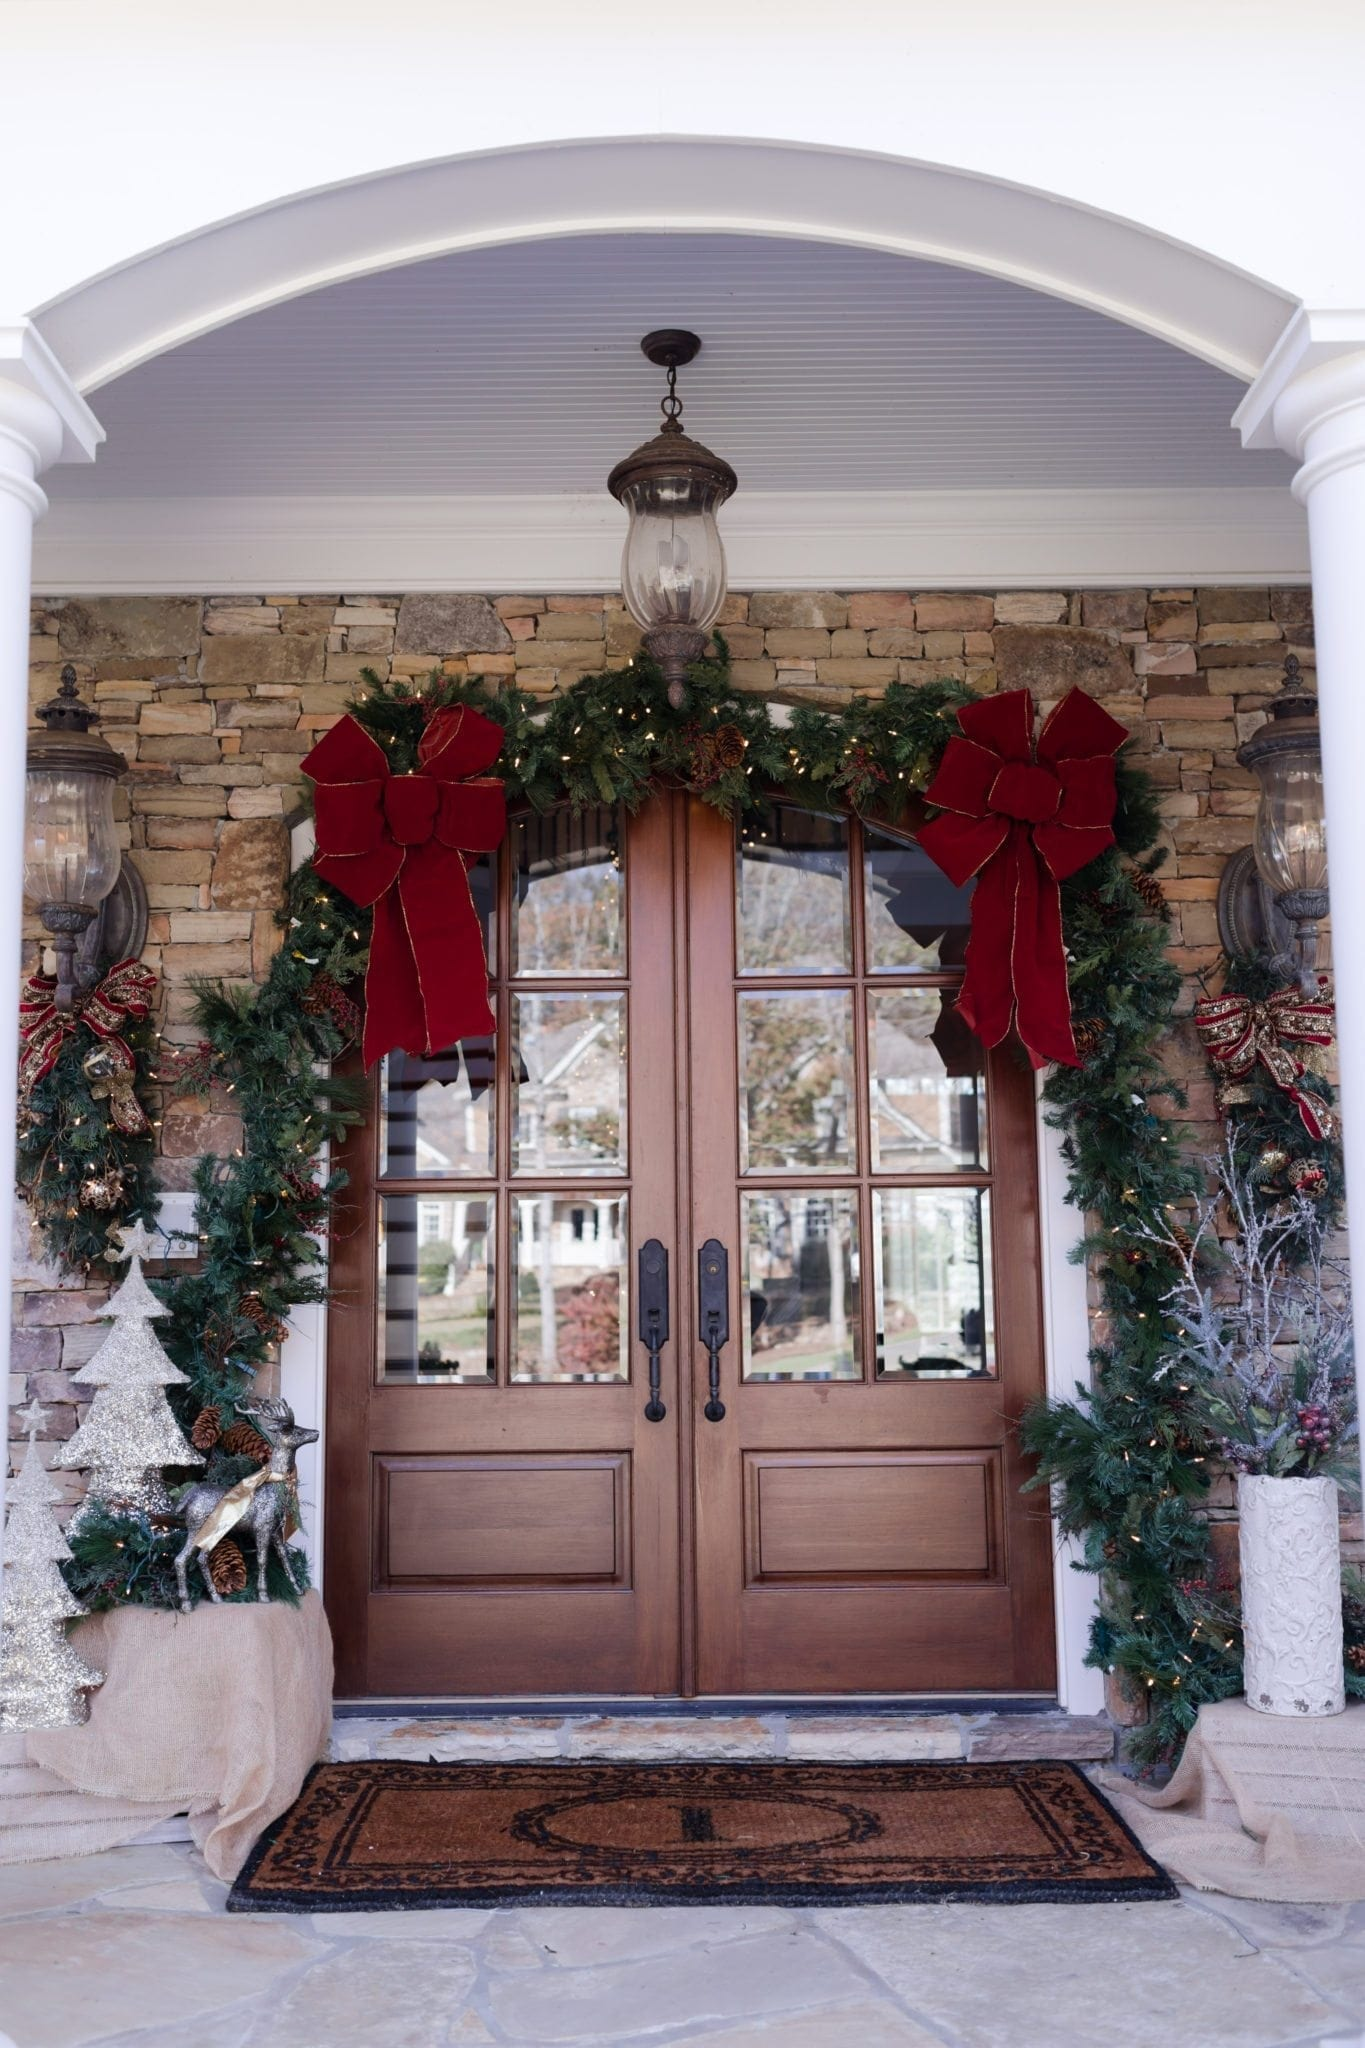 Garland hung around door frame with big oversized red ribbons and gas lanterns. Front door decorating ideas for Christmas.